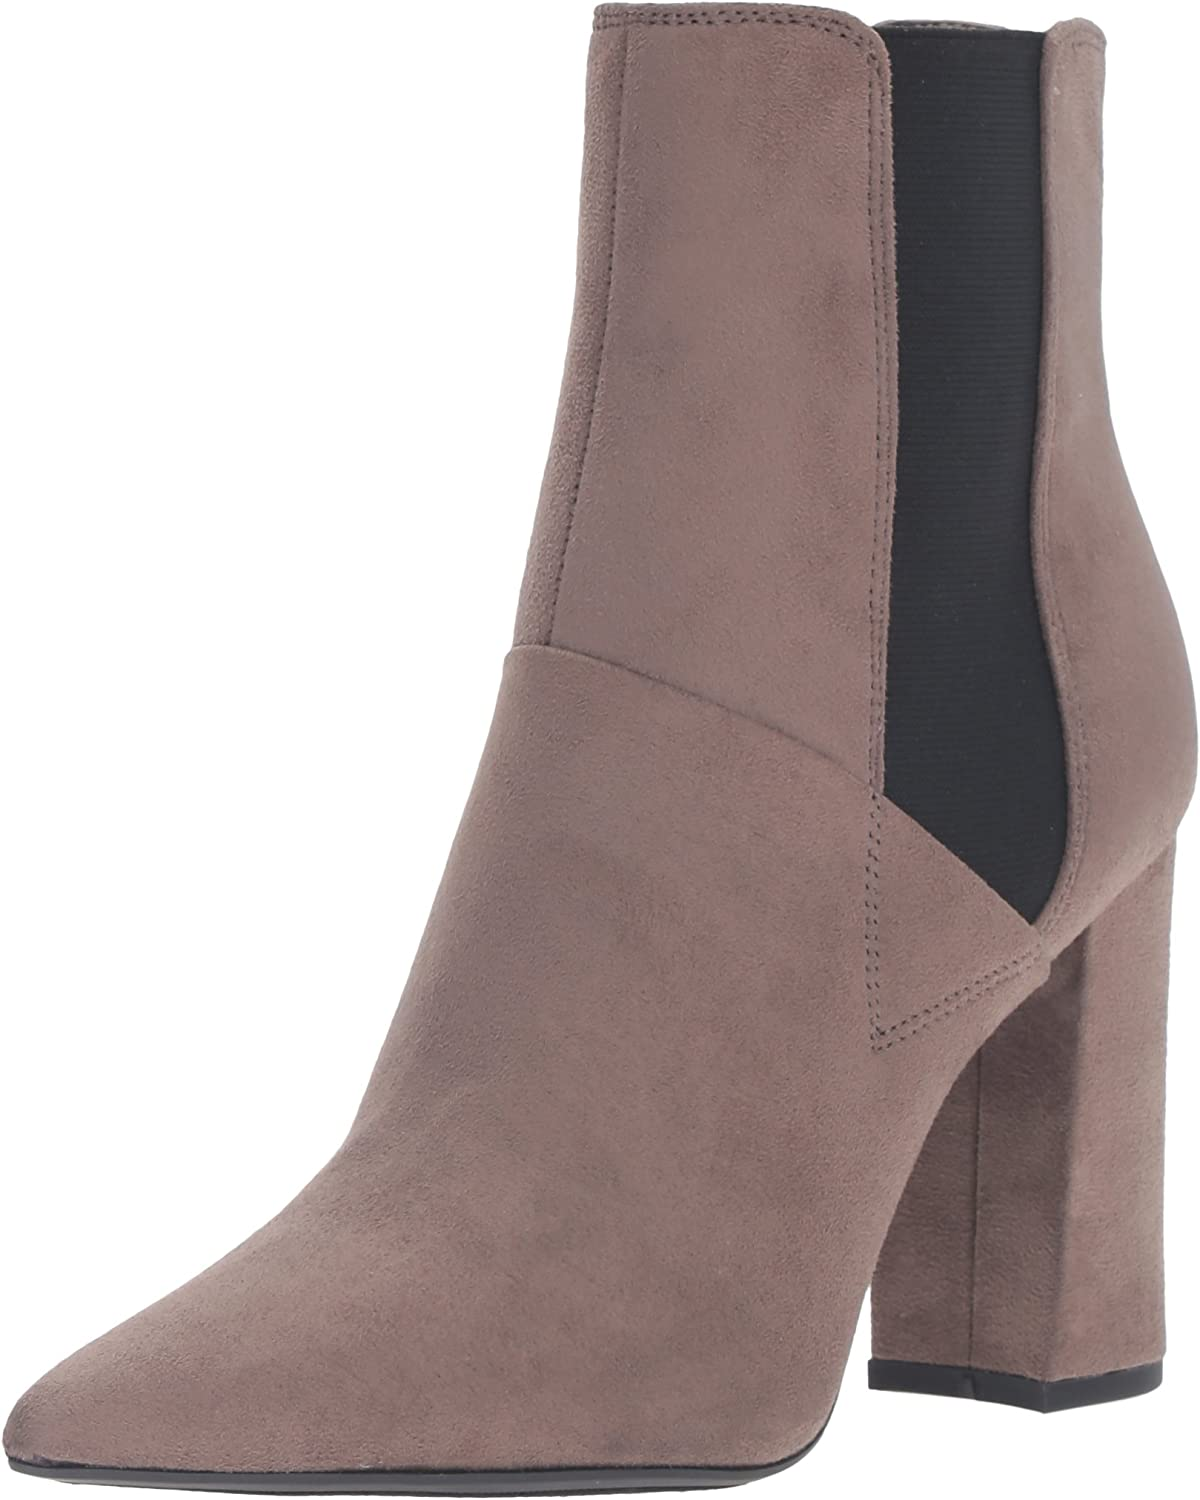 GUESS Womens Breki2 Ankle Bootie